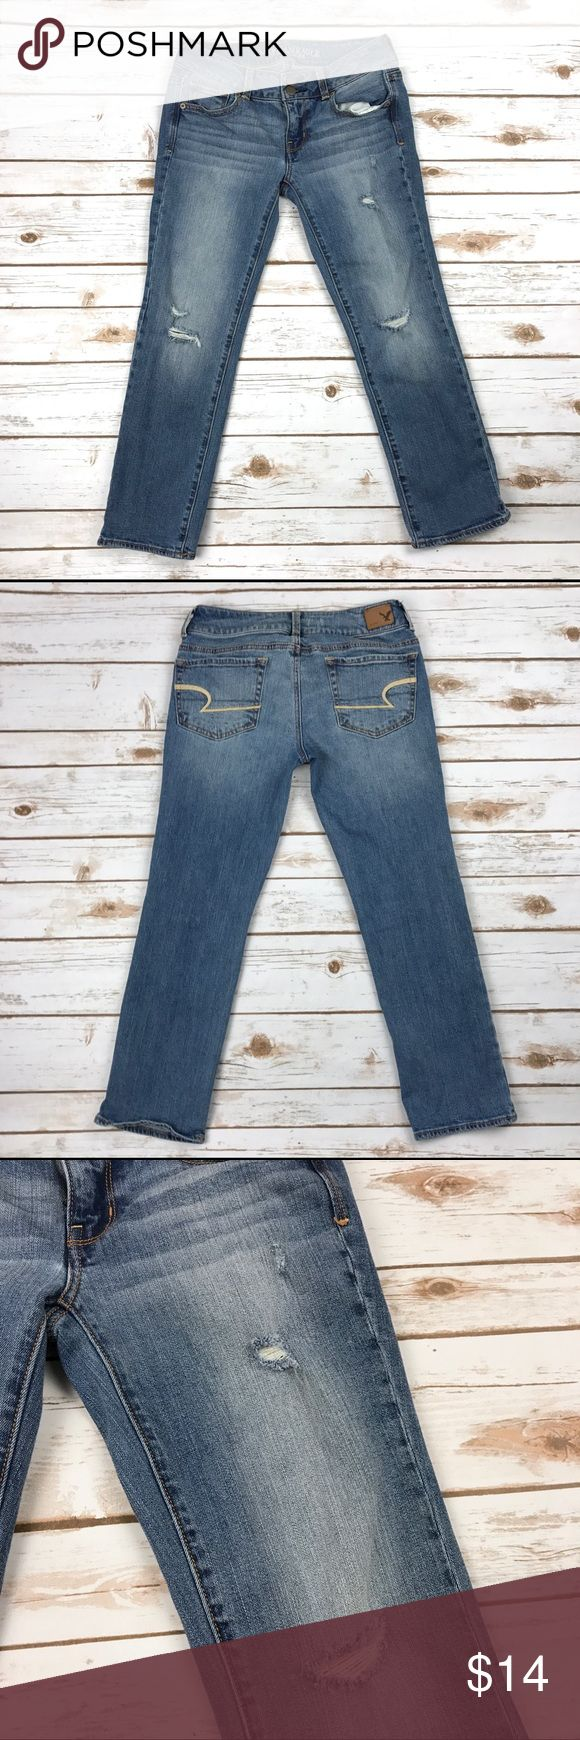 """American Eagle Artist Crop Stretch Capri Jeans American Eagle Artist Crop Stretch Capri Jeans Size 2 Distressed Medium Wash Materials: 99% cotton, 1% spandex Pre-owned in excellent condition!  Actual measurements taken laying flat: waist- 13"""" rise- 7.25"""" inseam- 24.5"""" leg opening- 6.75""""   Location- C14 American Eagle Outfitters Jeans Ankle & Cropped"""